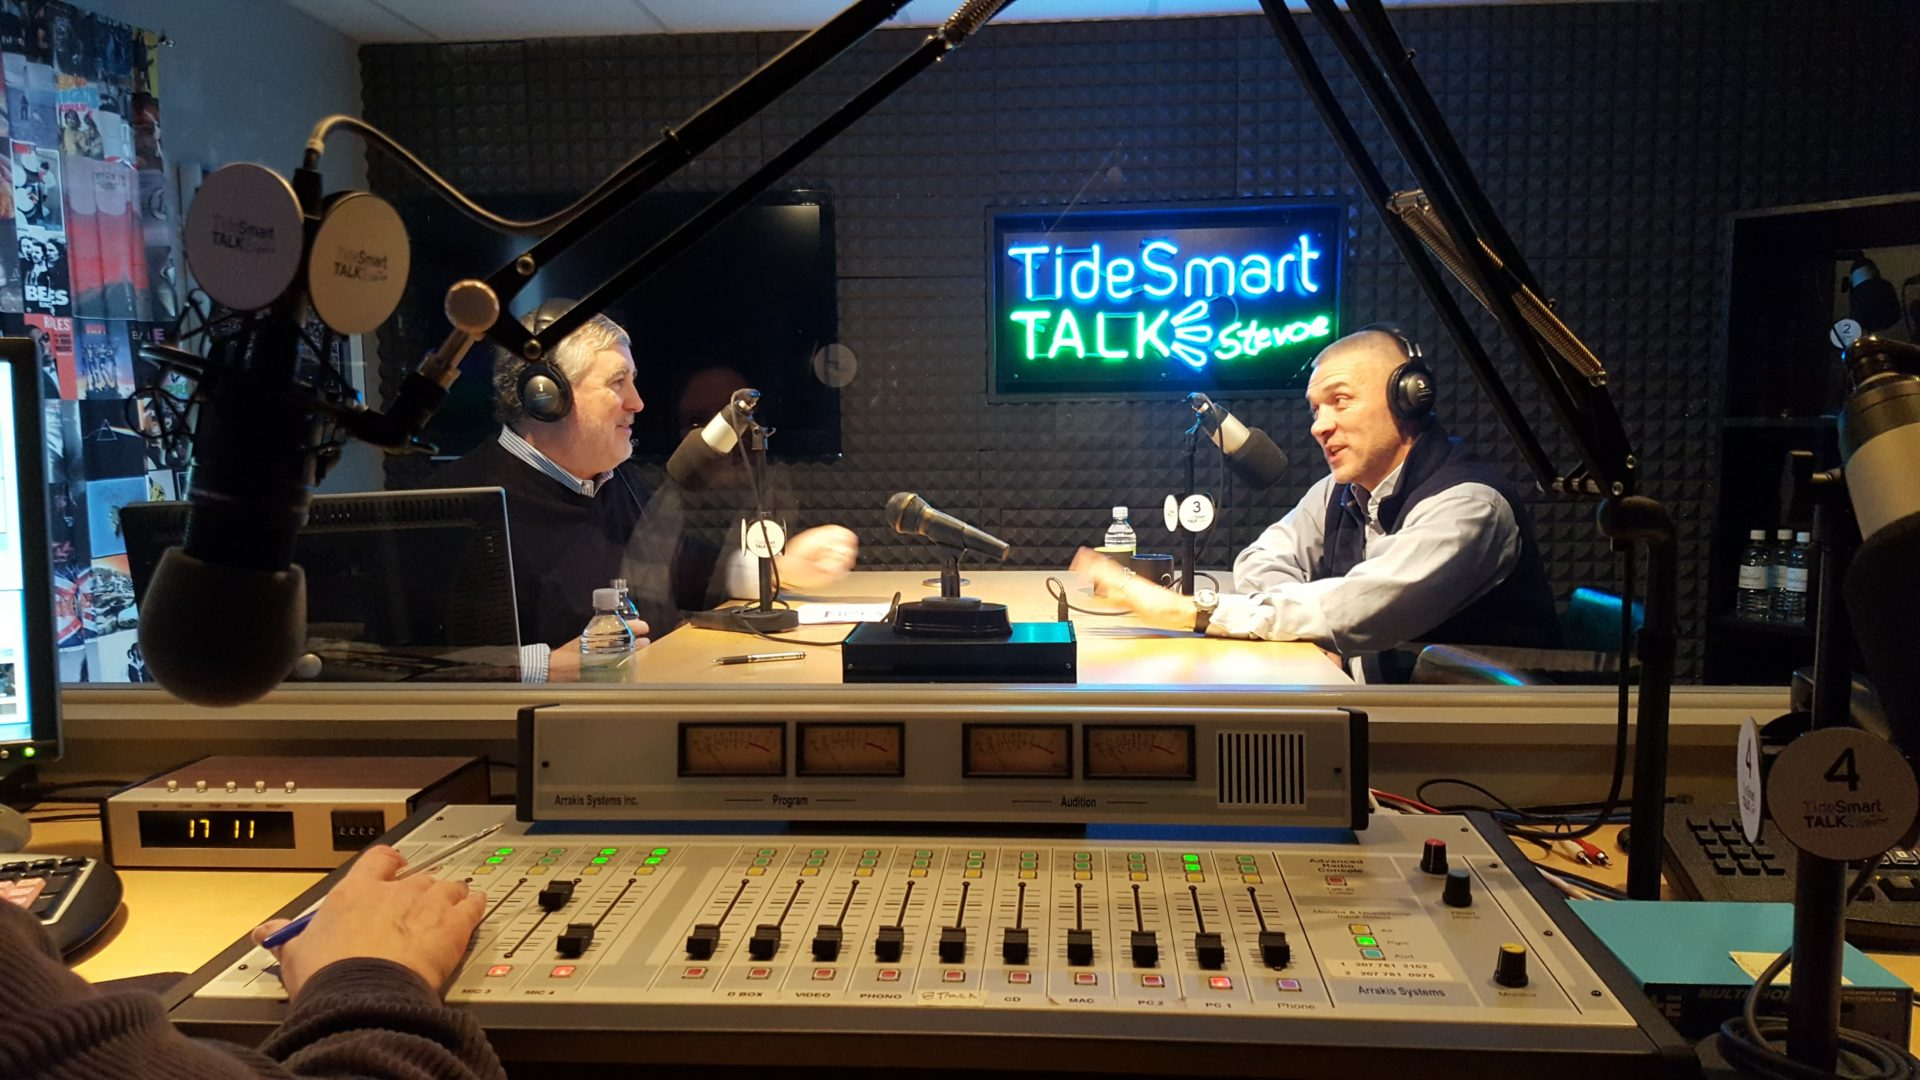 Host of TideSmart Talk with Stevoe, Steve Woods, welcomed YHS Boys' Soccer Coach, Mike Hagerty (at right).